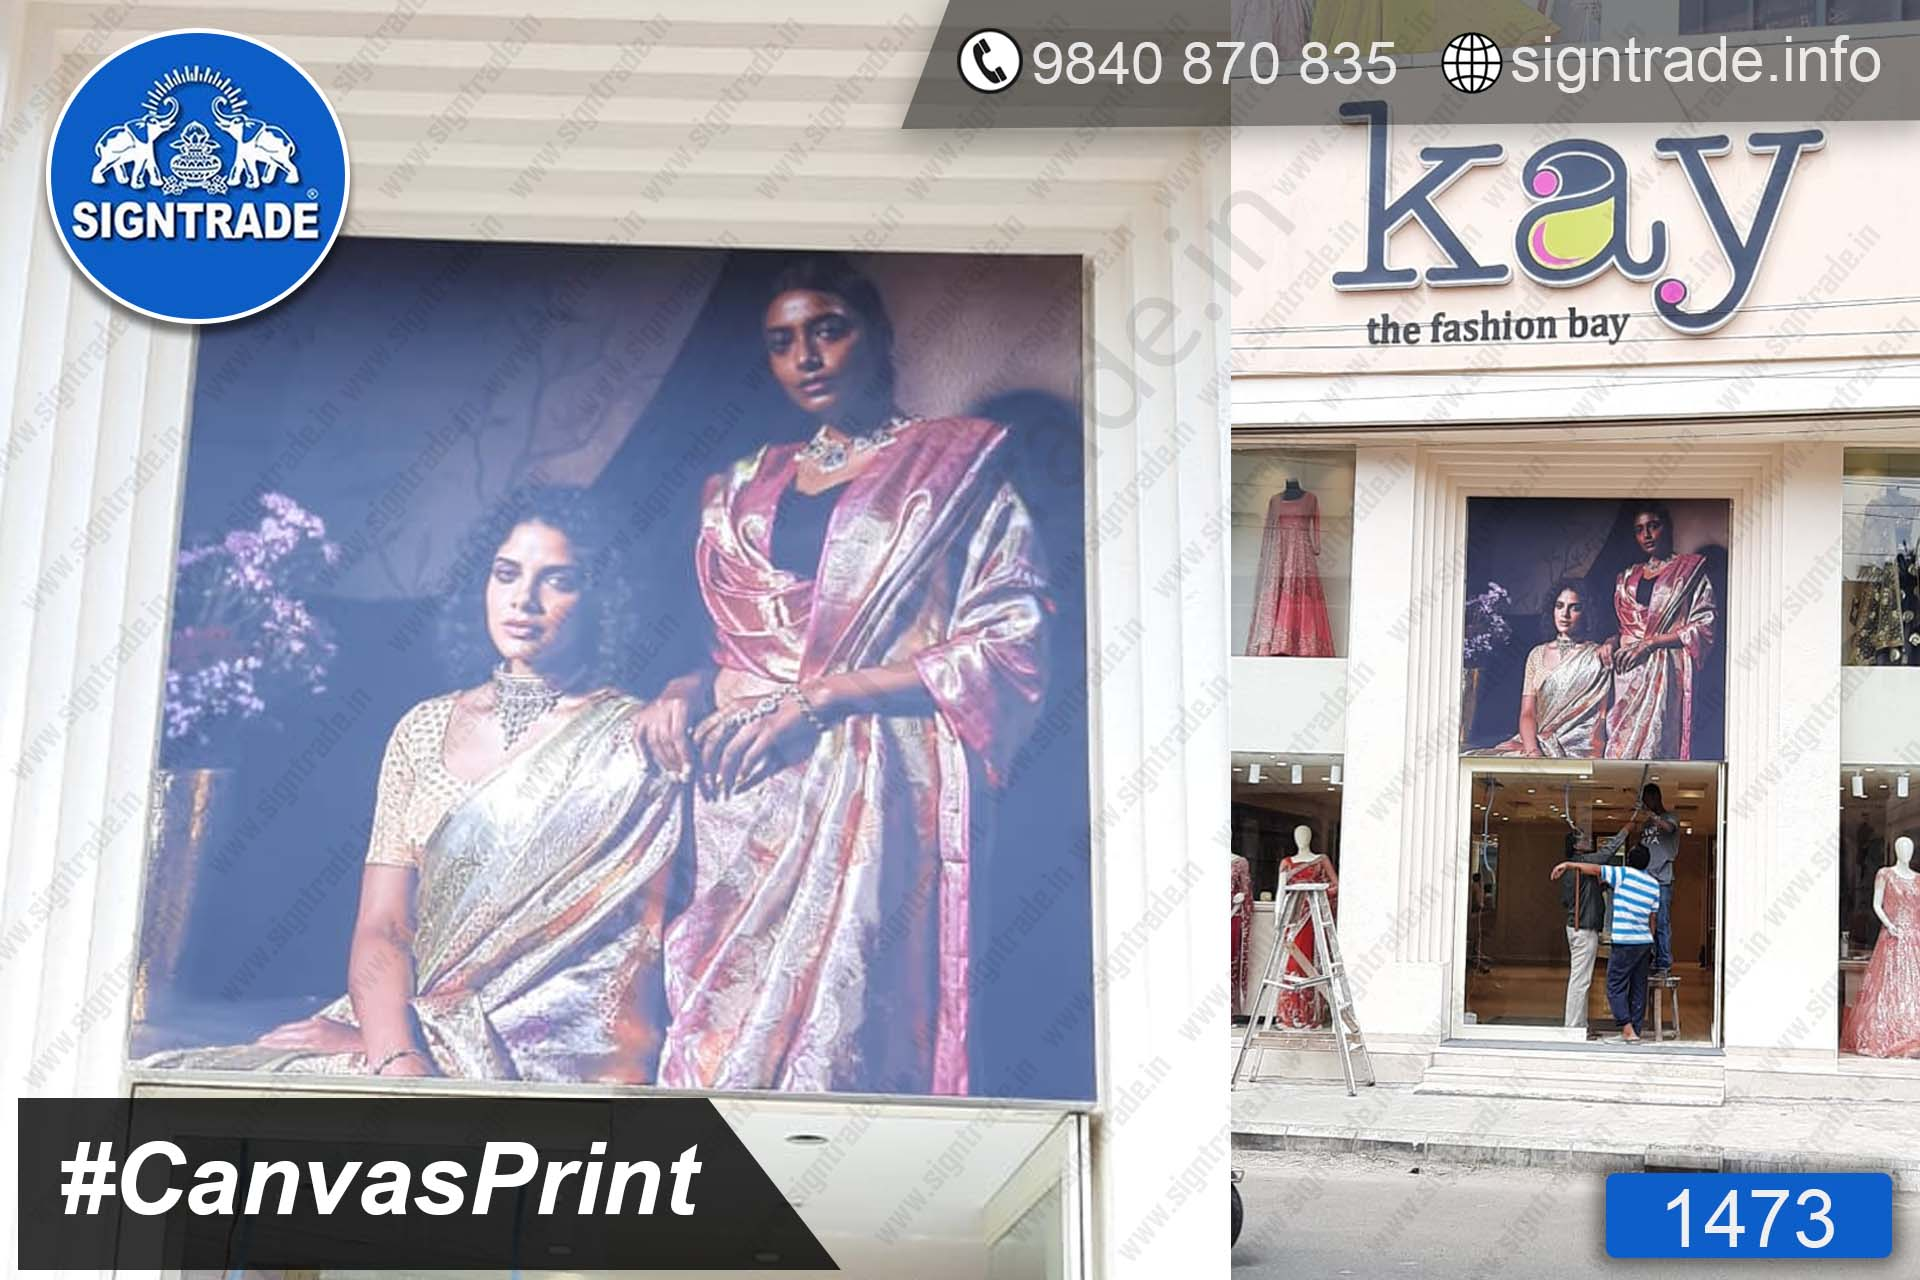 Kay The Fashion Bay - Canvas Print, SIGNTRADE - Digital Printing Service in Chennai